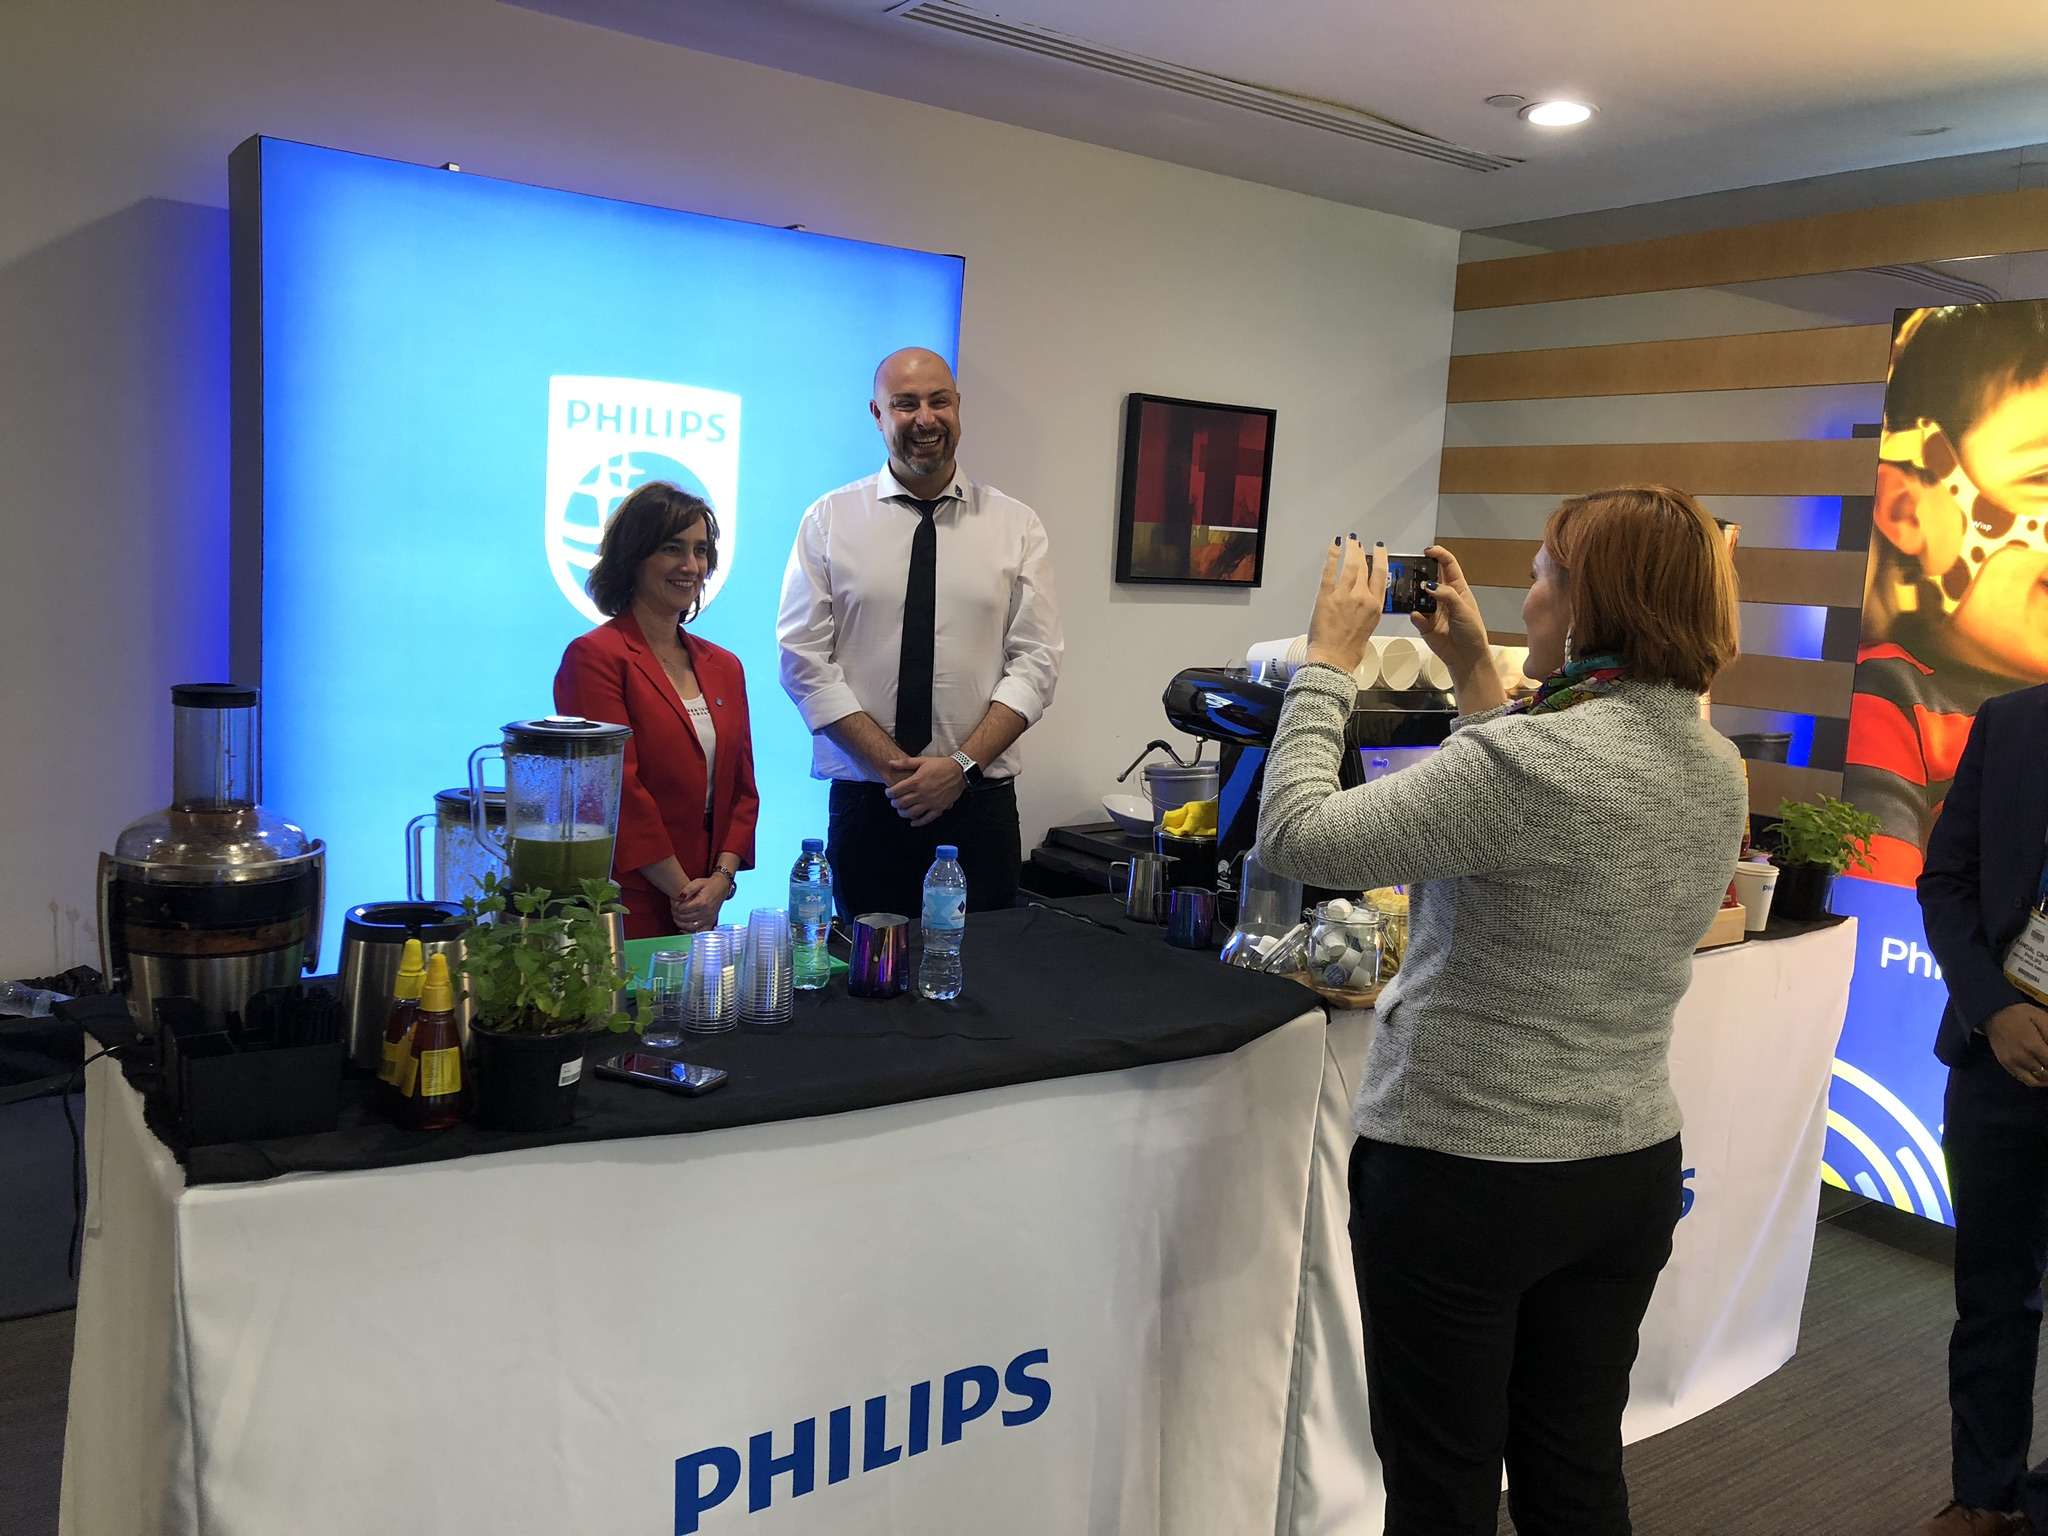 Phillips Arab Health Dubai 2019